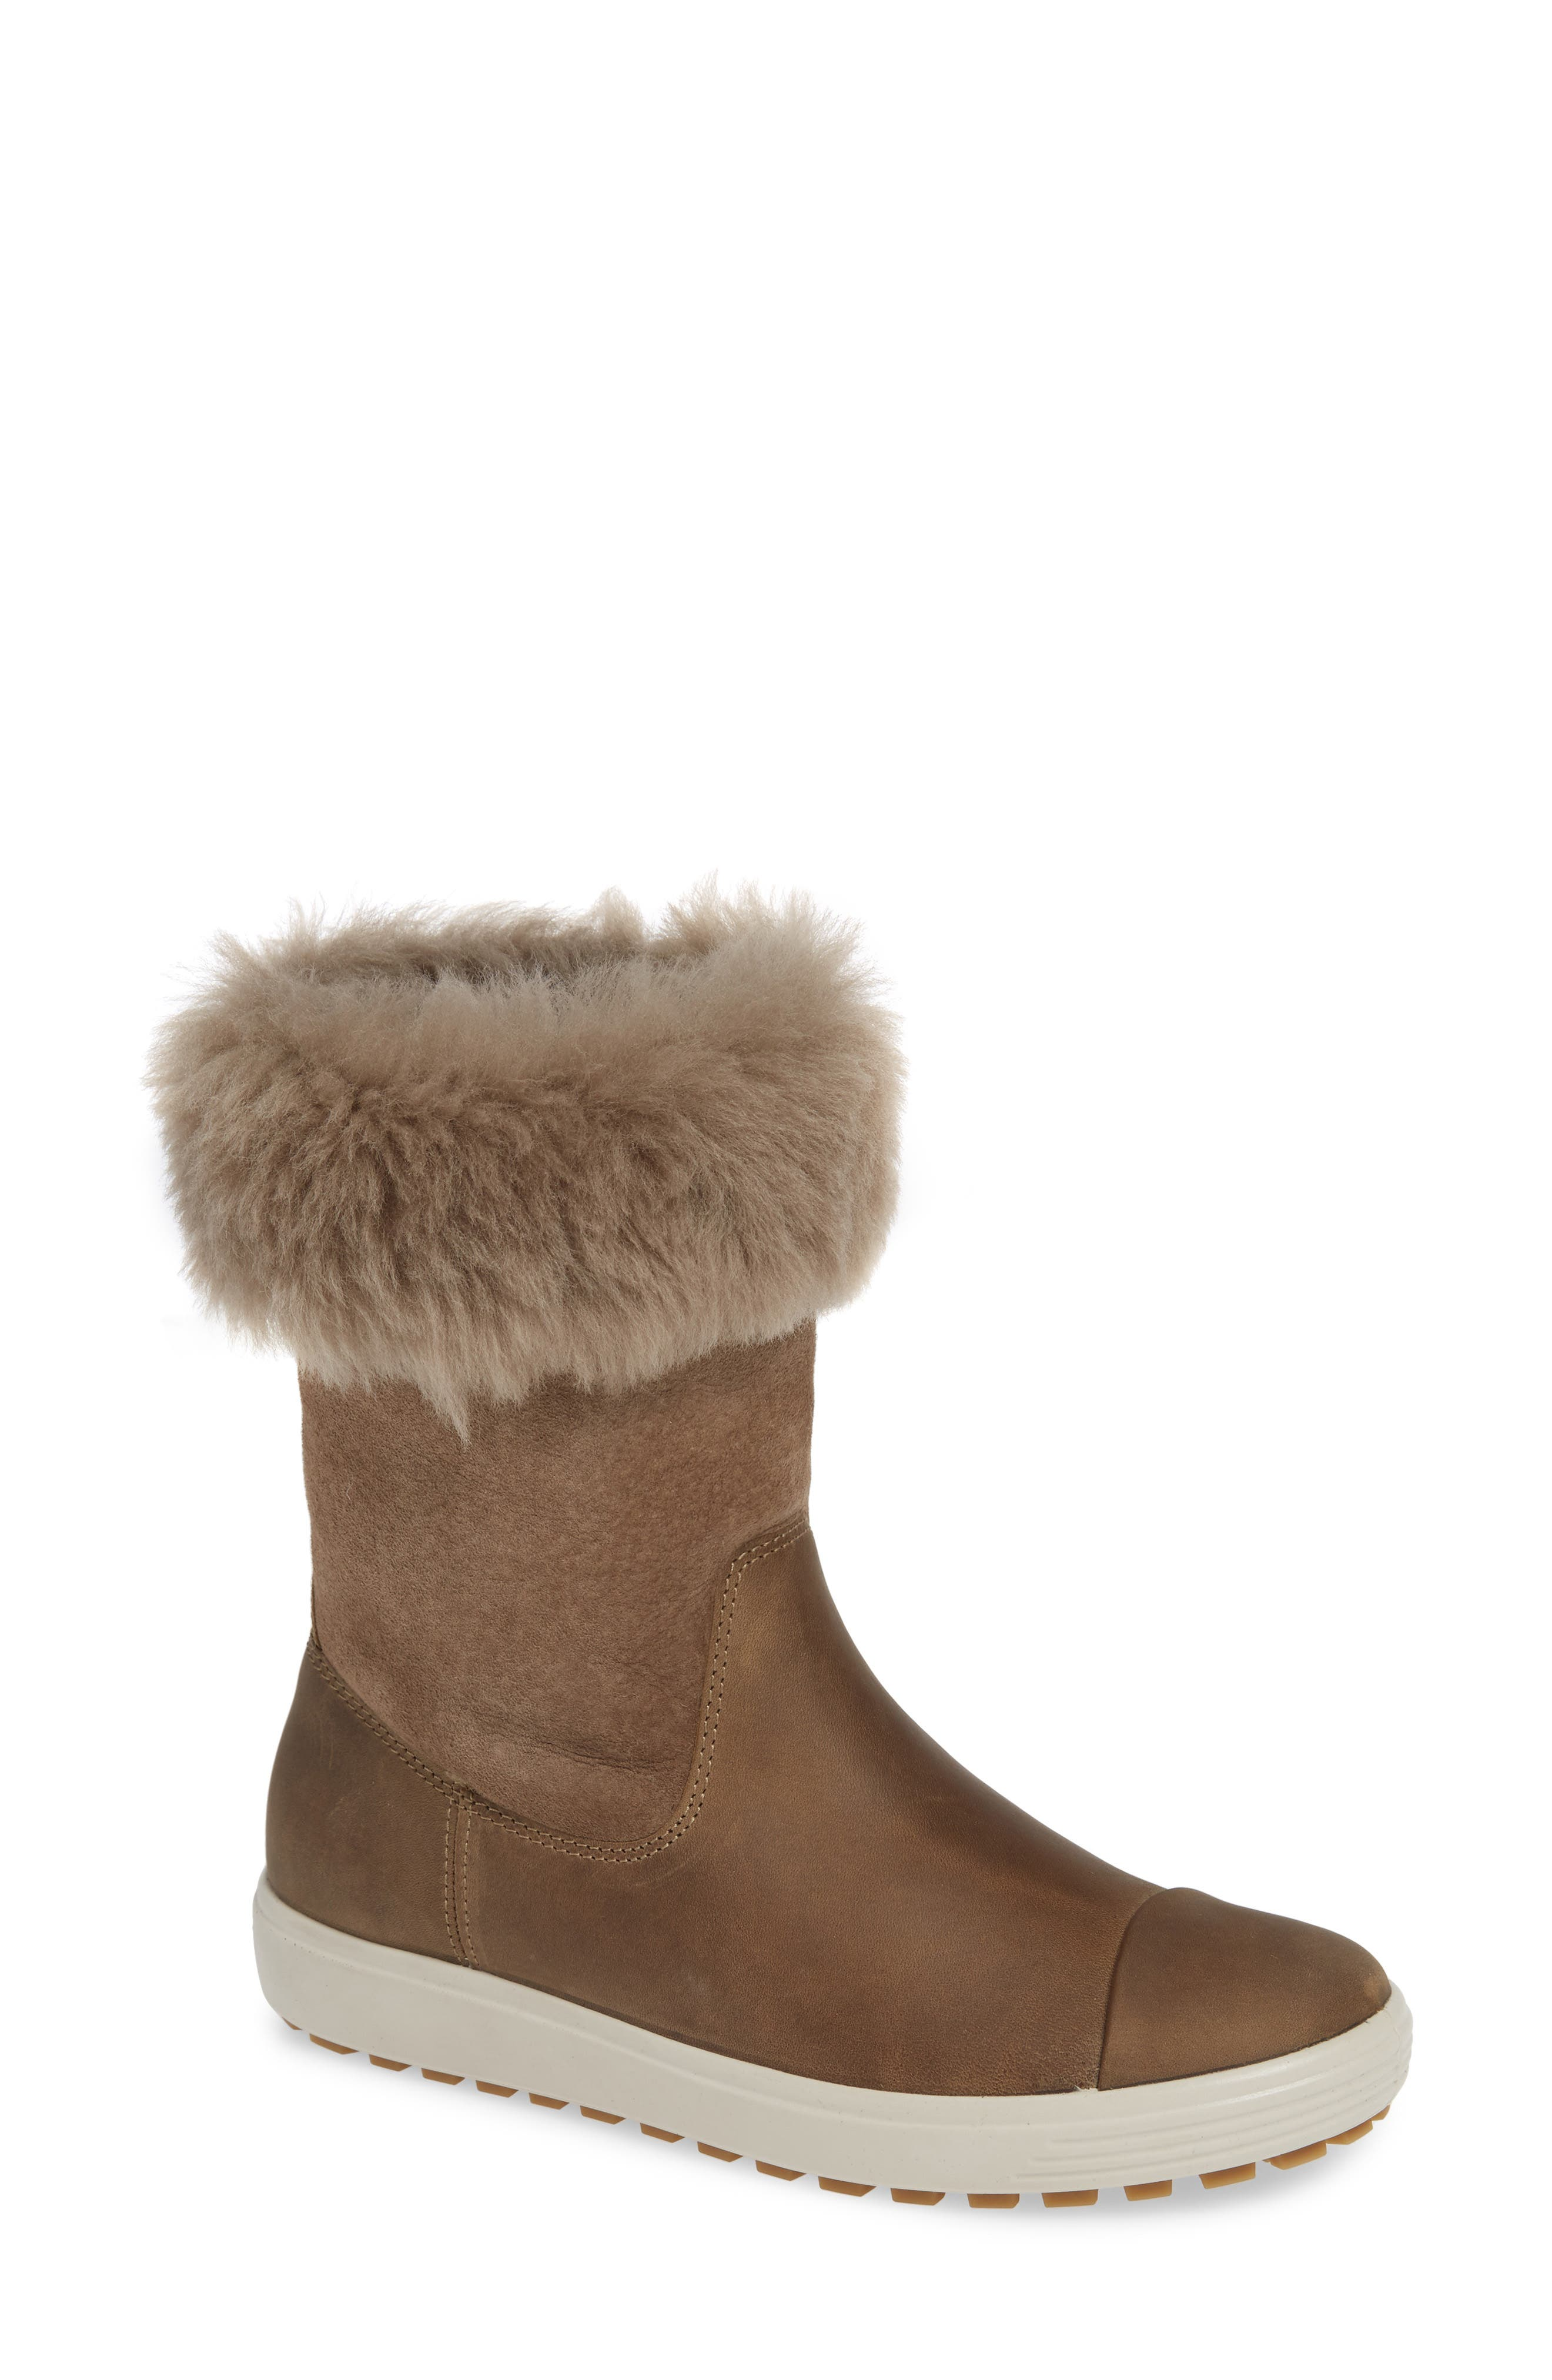 Ecco Soft 7 Tred Waterproof Genuine Shearling Lined Boot, Brown